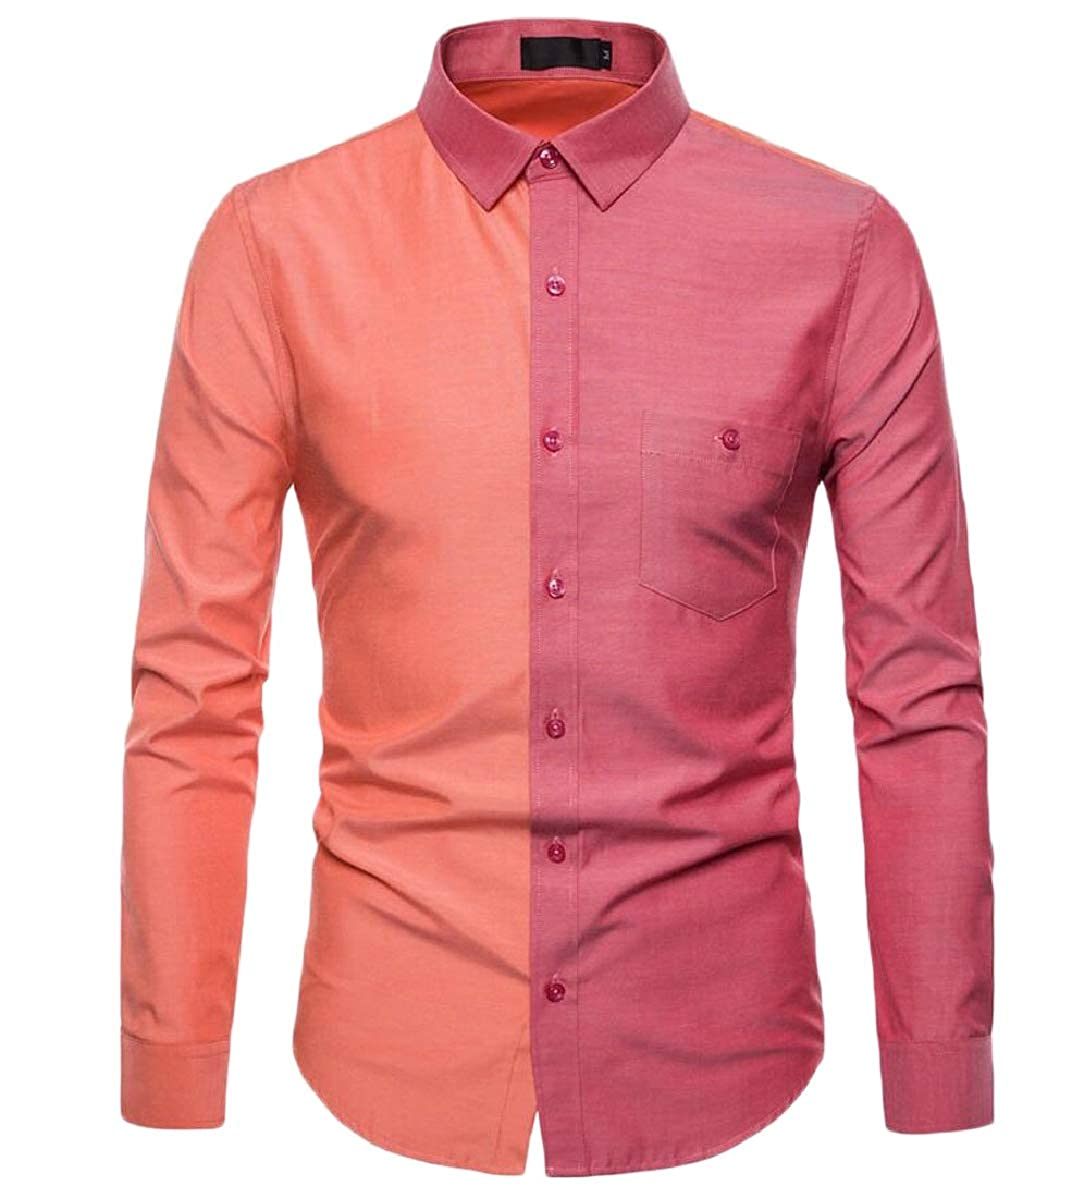 YIhujiuben Mens Casual Dress Contrast Color Button Front Long Sleeve Shirts